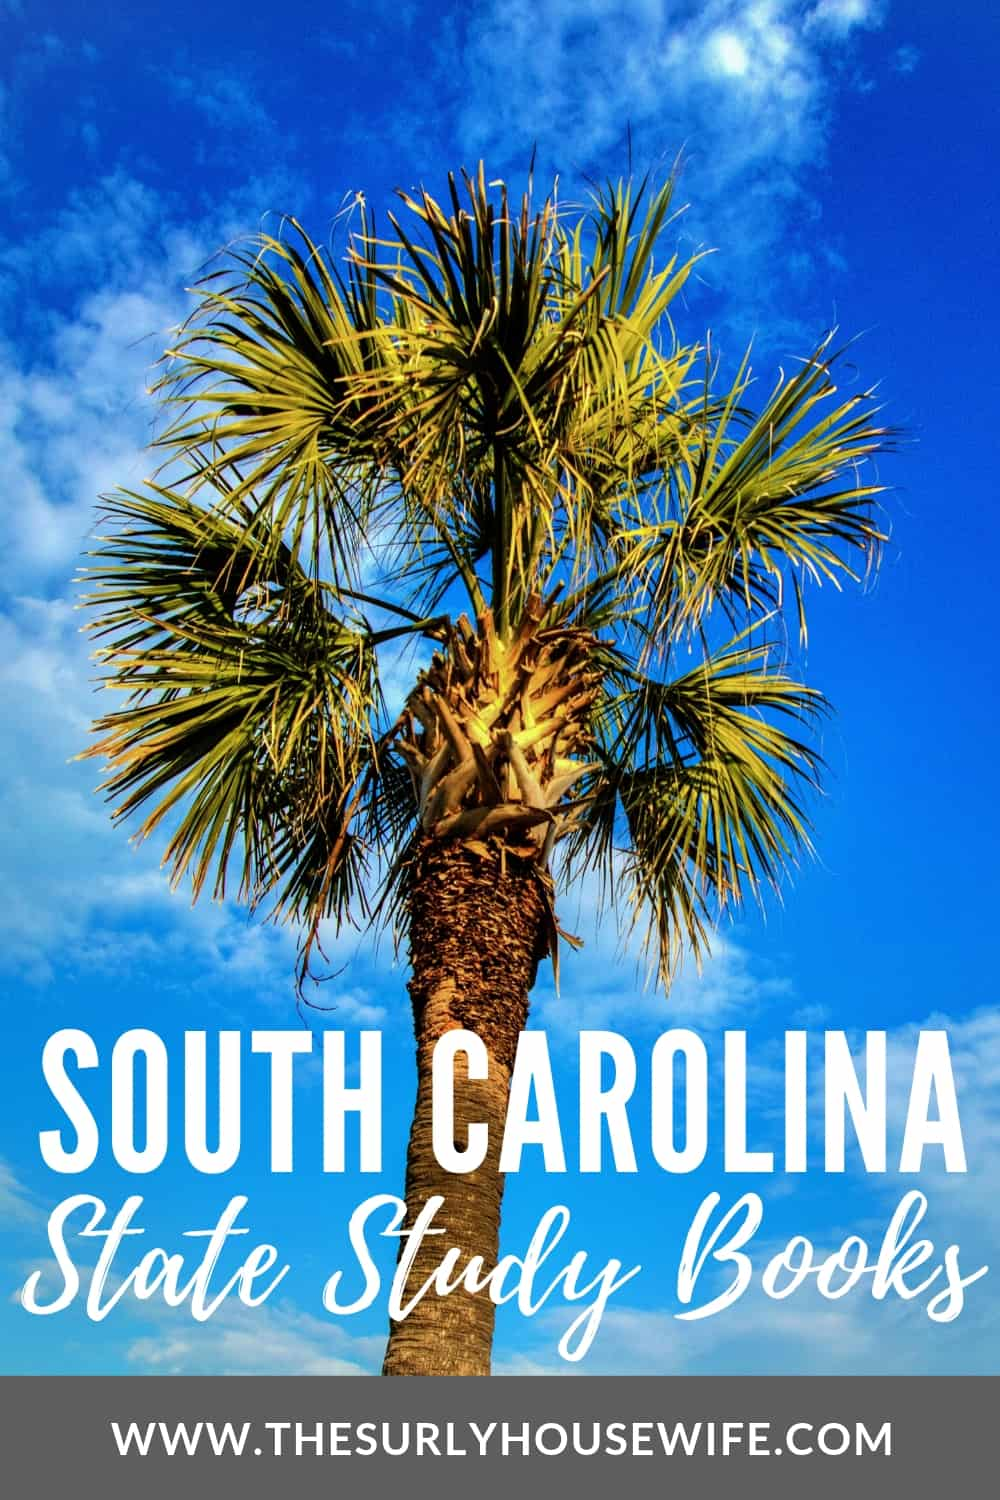 Need children's books about South Carolina? This book list includes picture books about South Carolina history and chapter books set in South Carolina.